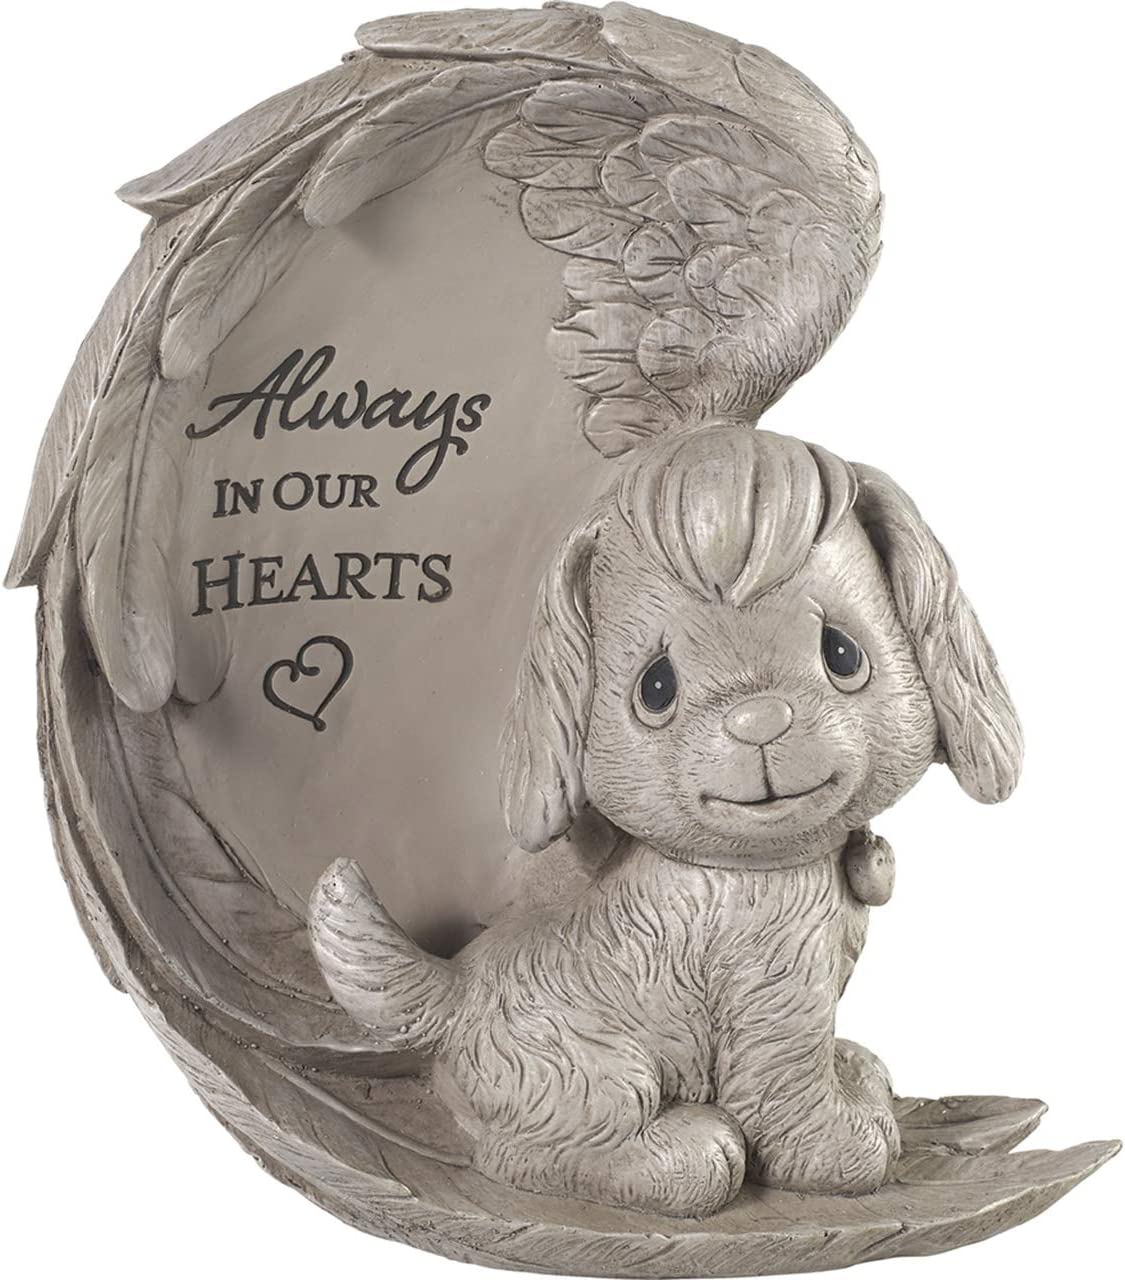 Precious Moments 193422 Always in Our Hearts Dog Memorial Garden Stone, One Size, Gray